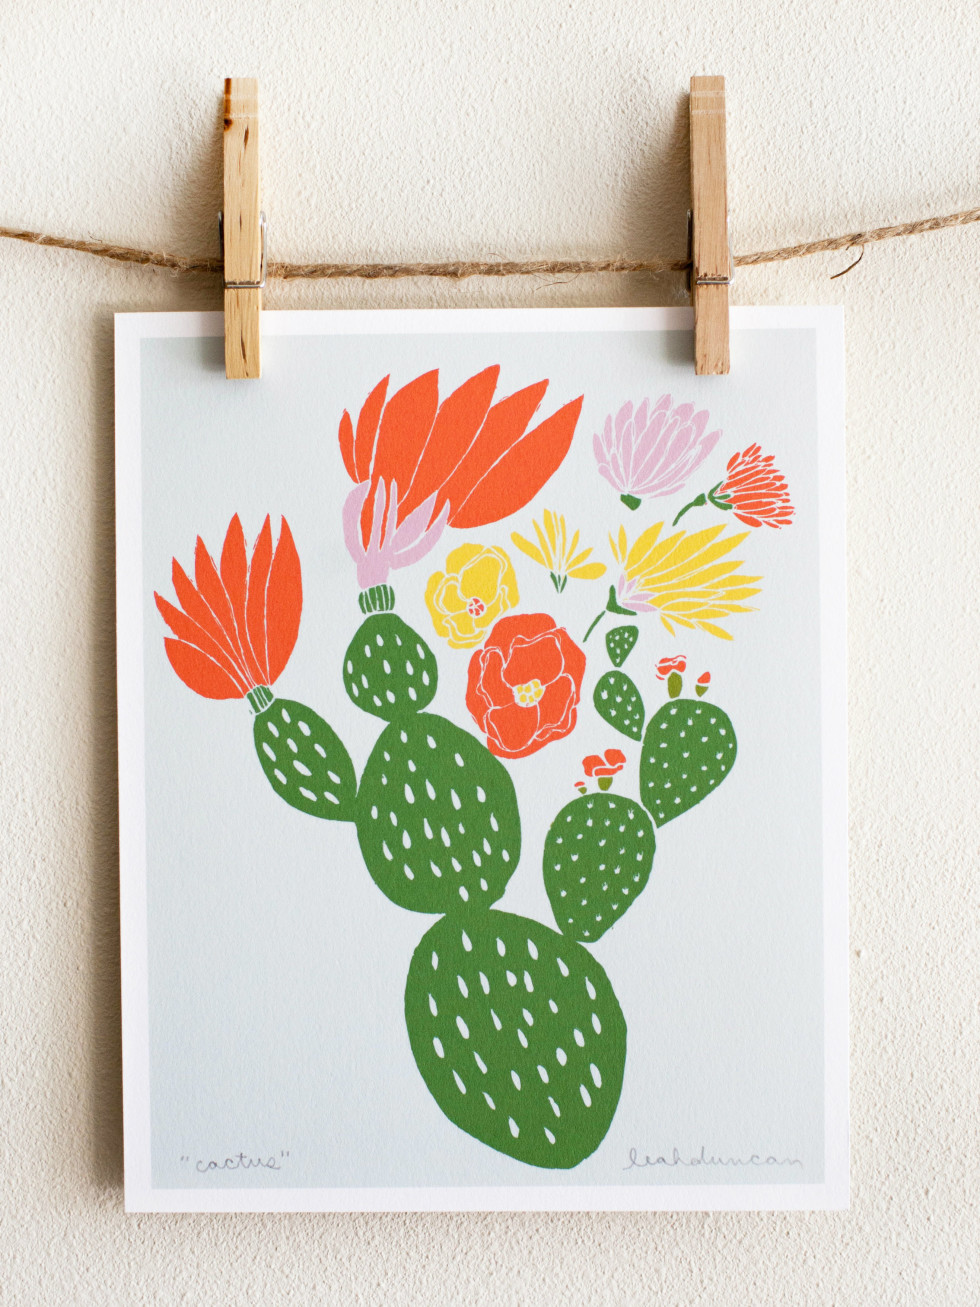 Leah Duncan prints at West Elm